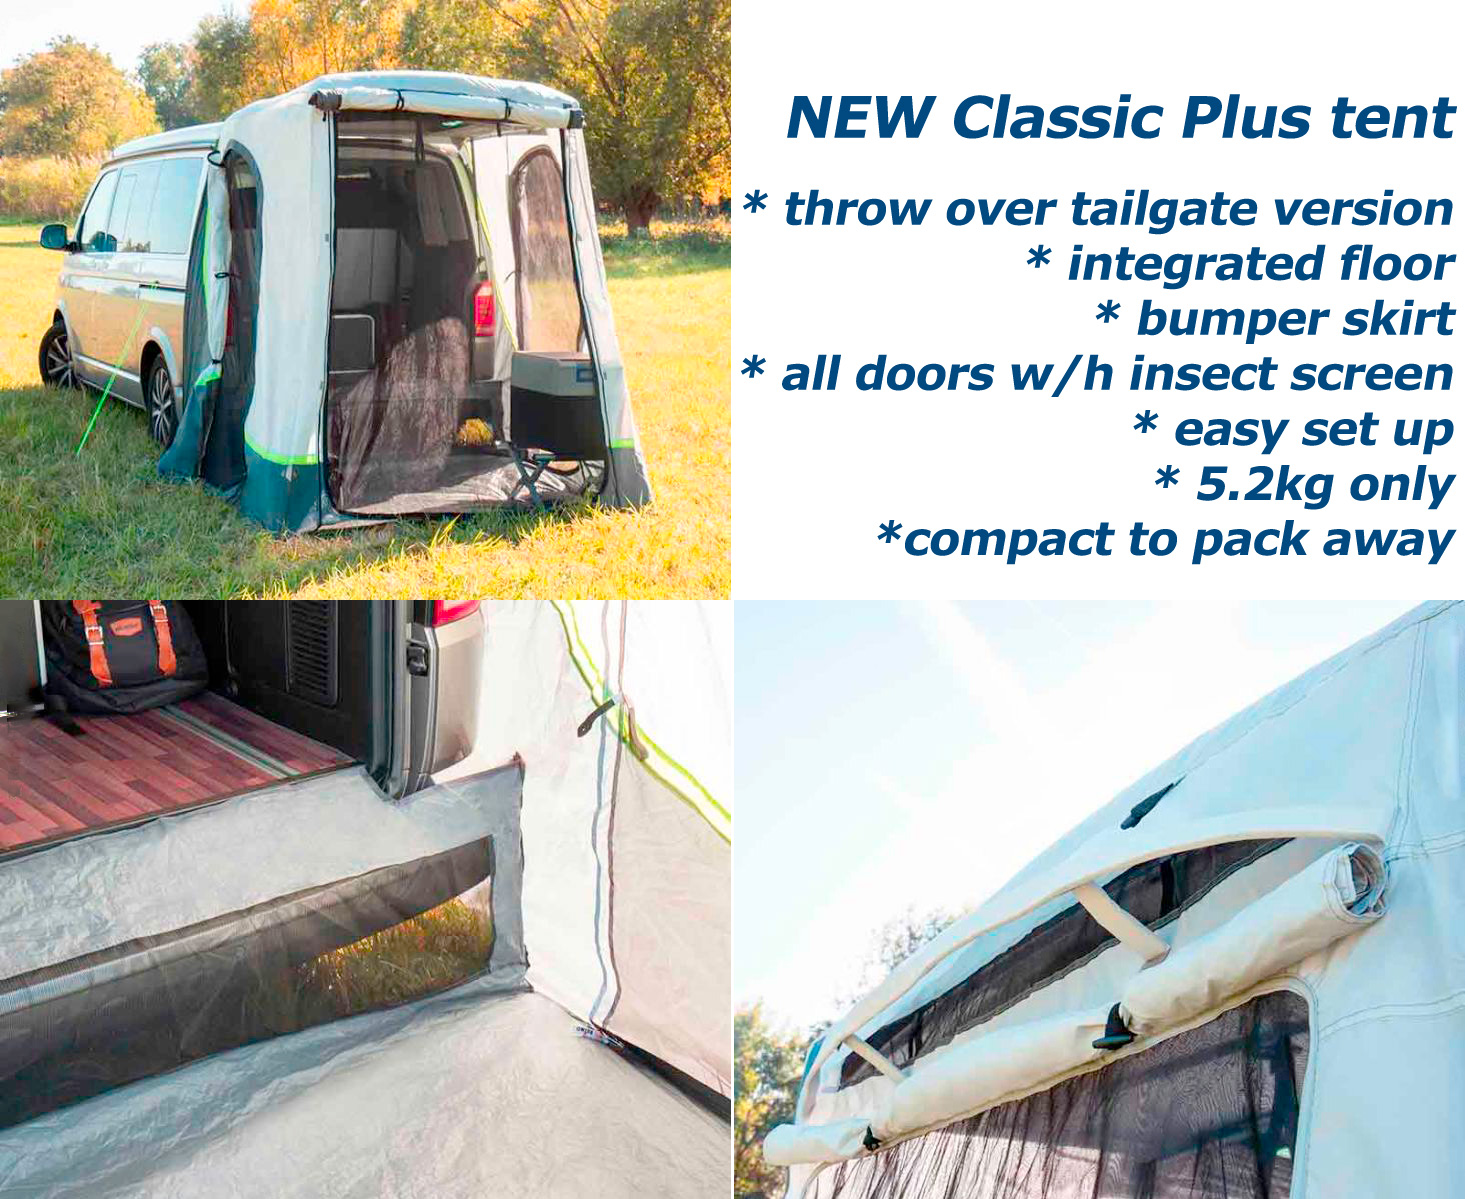 Classic Plus tent- for even more comfort